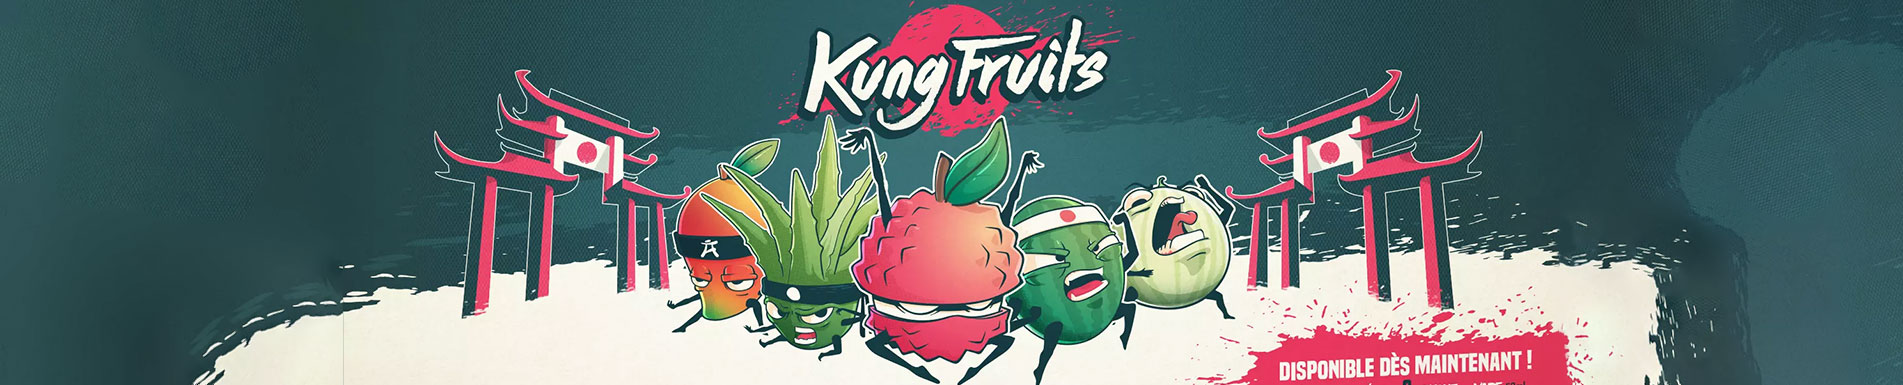 Arômes Kung Fruits par Cloud Vapor